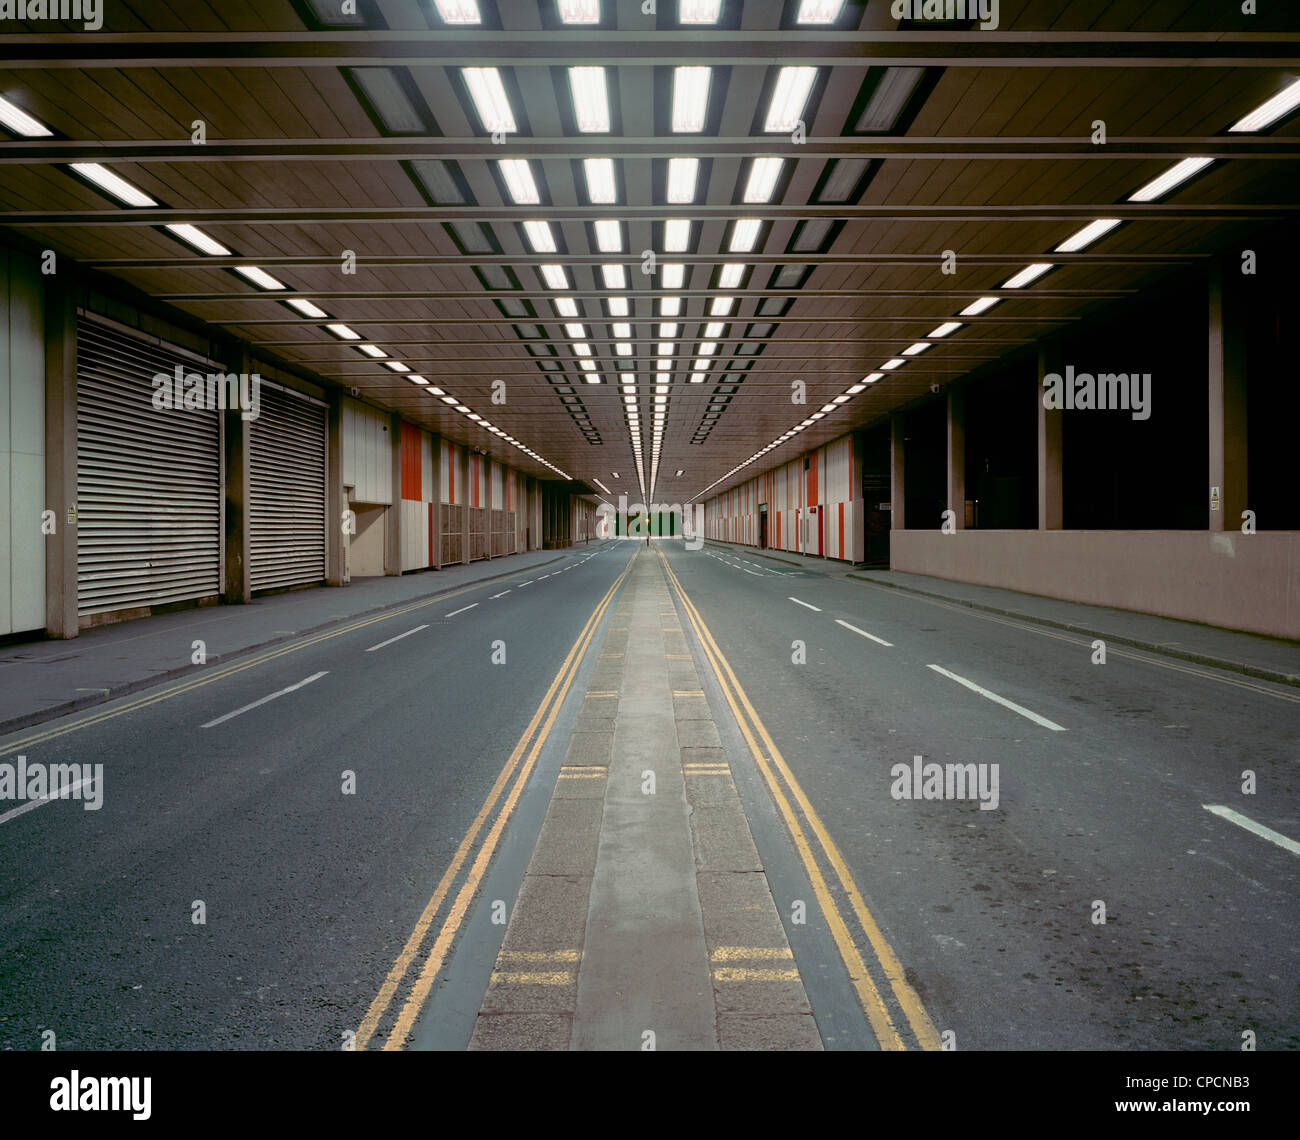 Illuminated road in parking structure - Stock Image